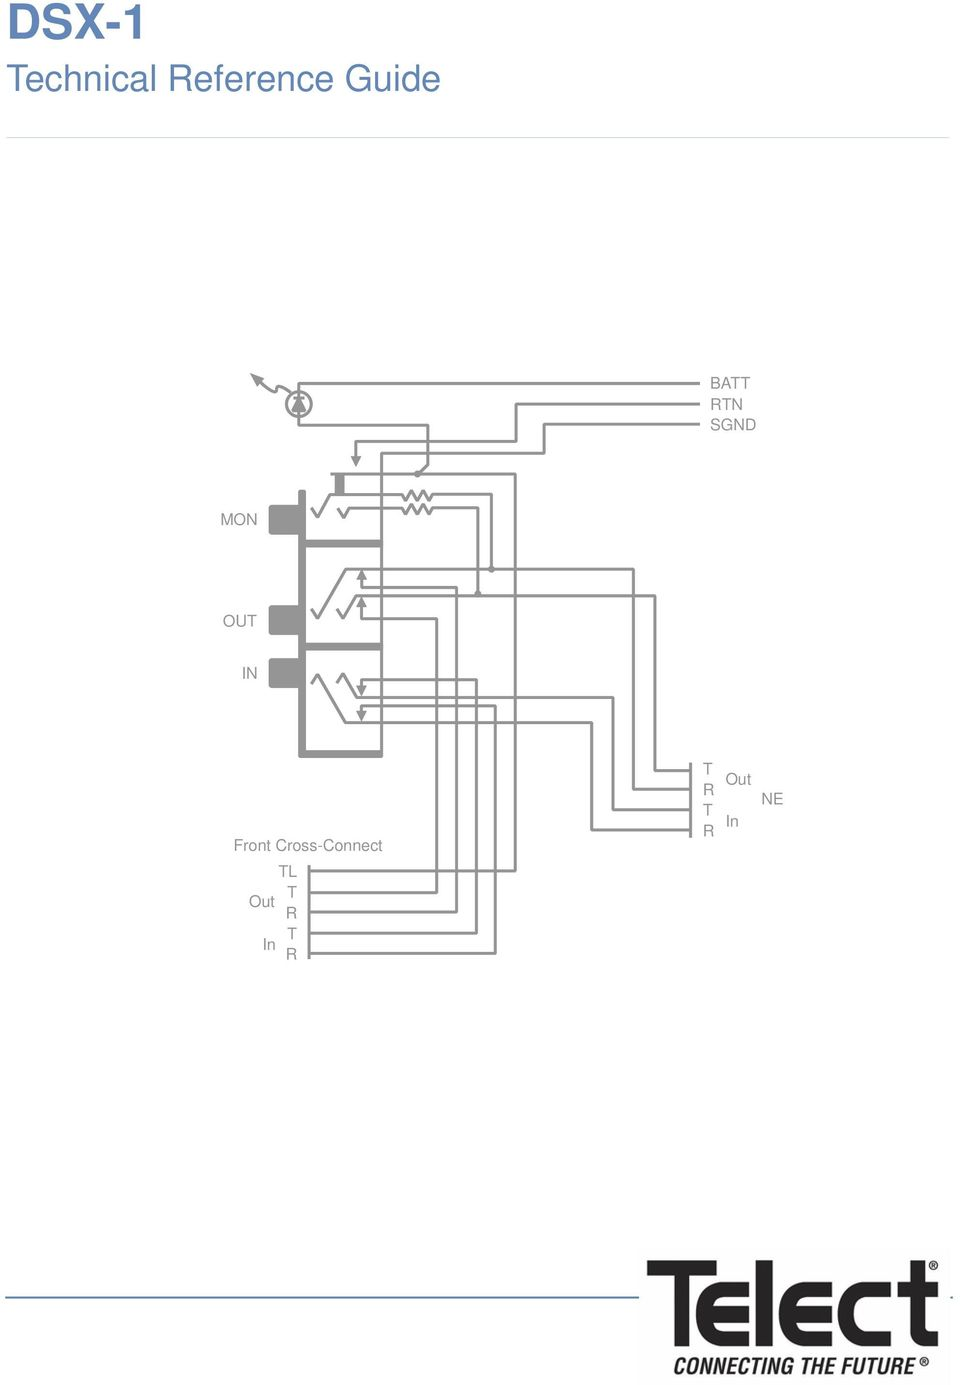 Dsx 1 Wiring Diagram Electrical Diagrams Sony S300btx Technical Reference Guide Batt Rtn Sgnd Mon Out T R